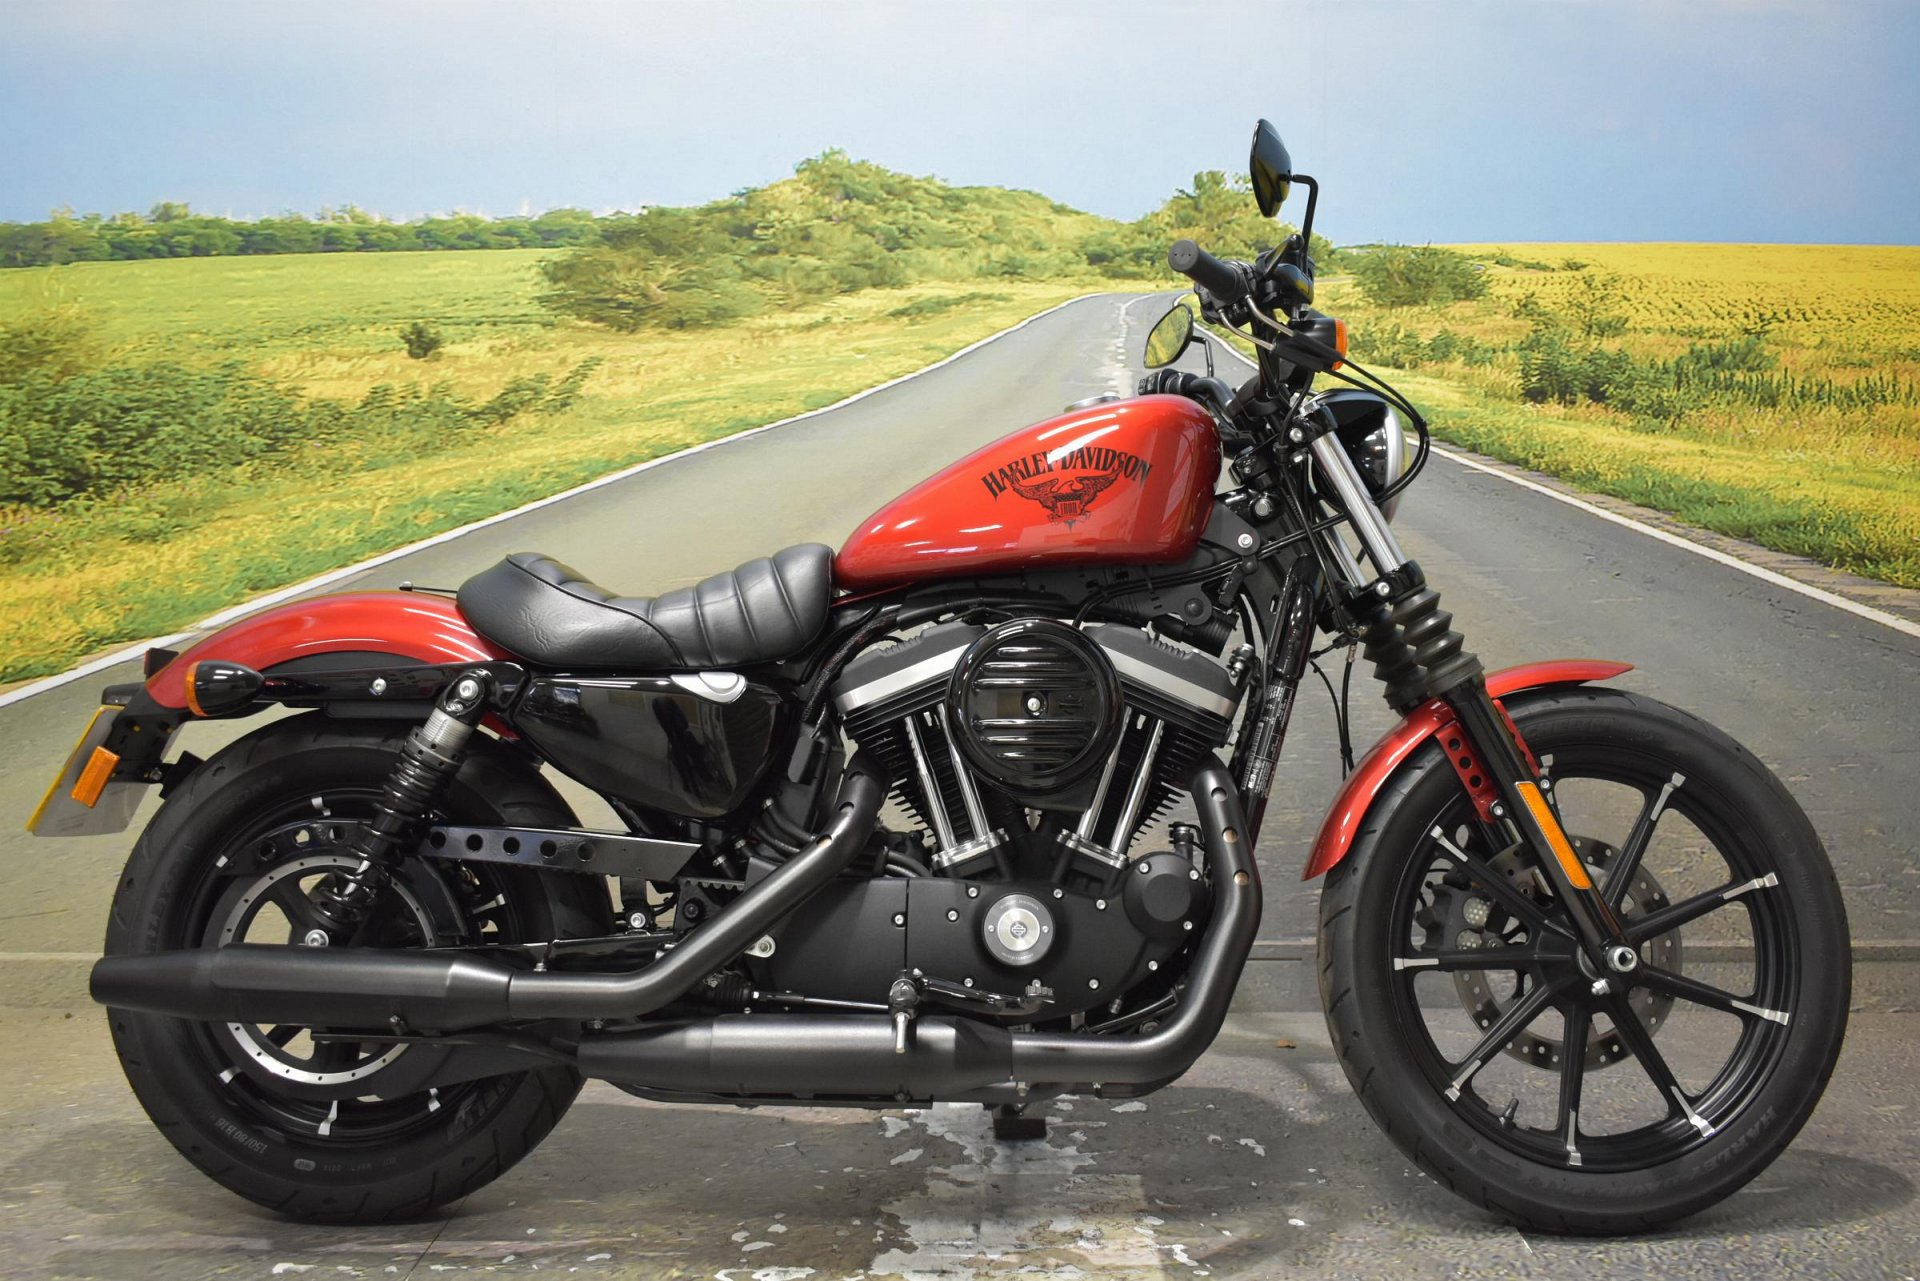 2017 Harley Davidson XL 883N Iron for sale in Derbyshire